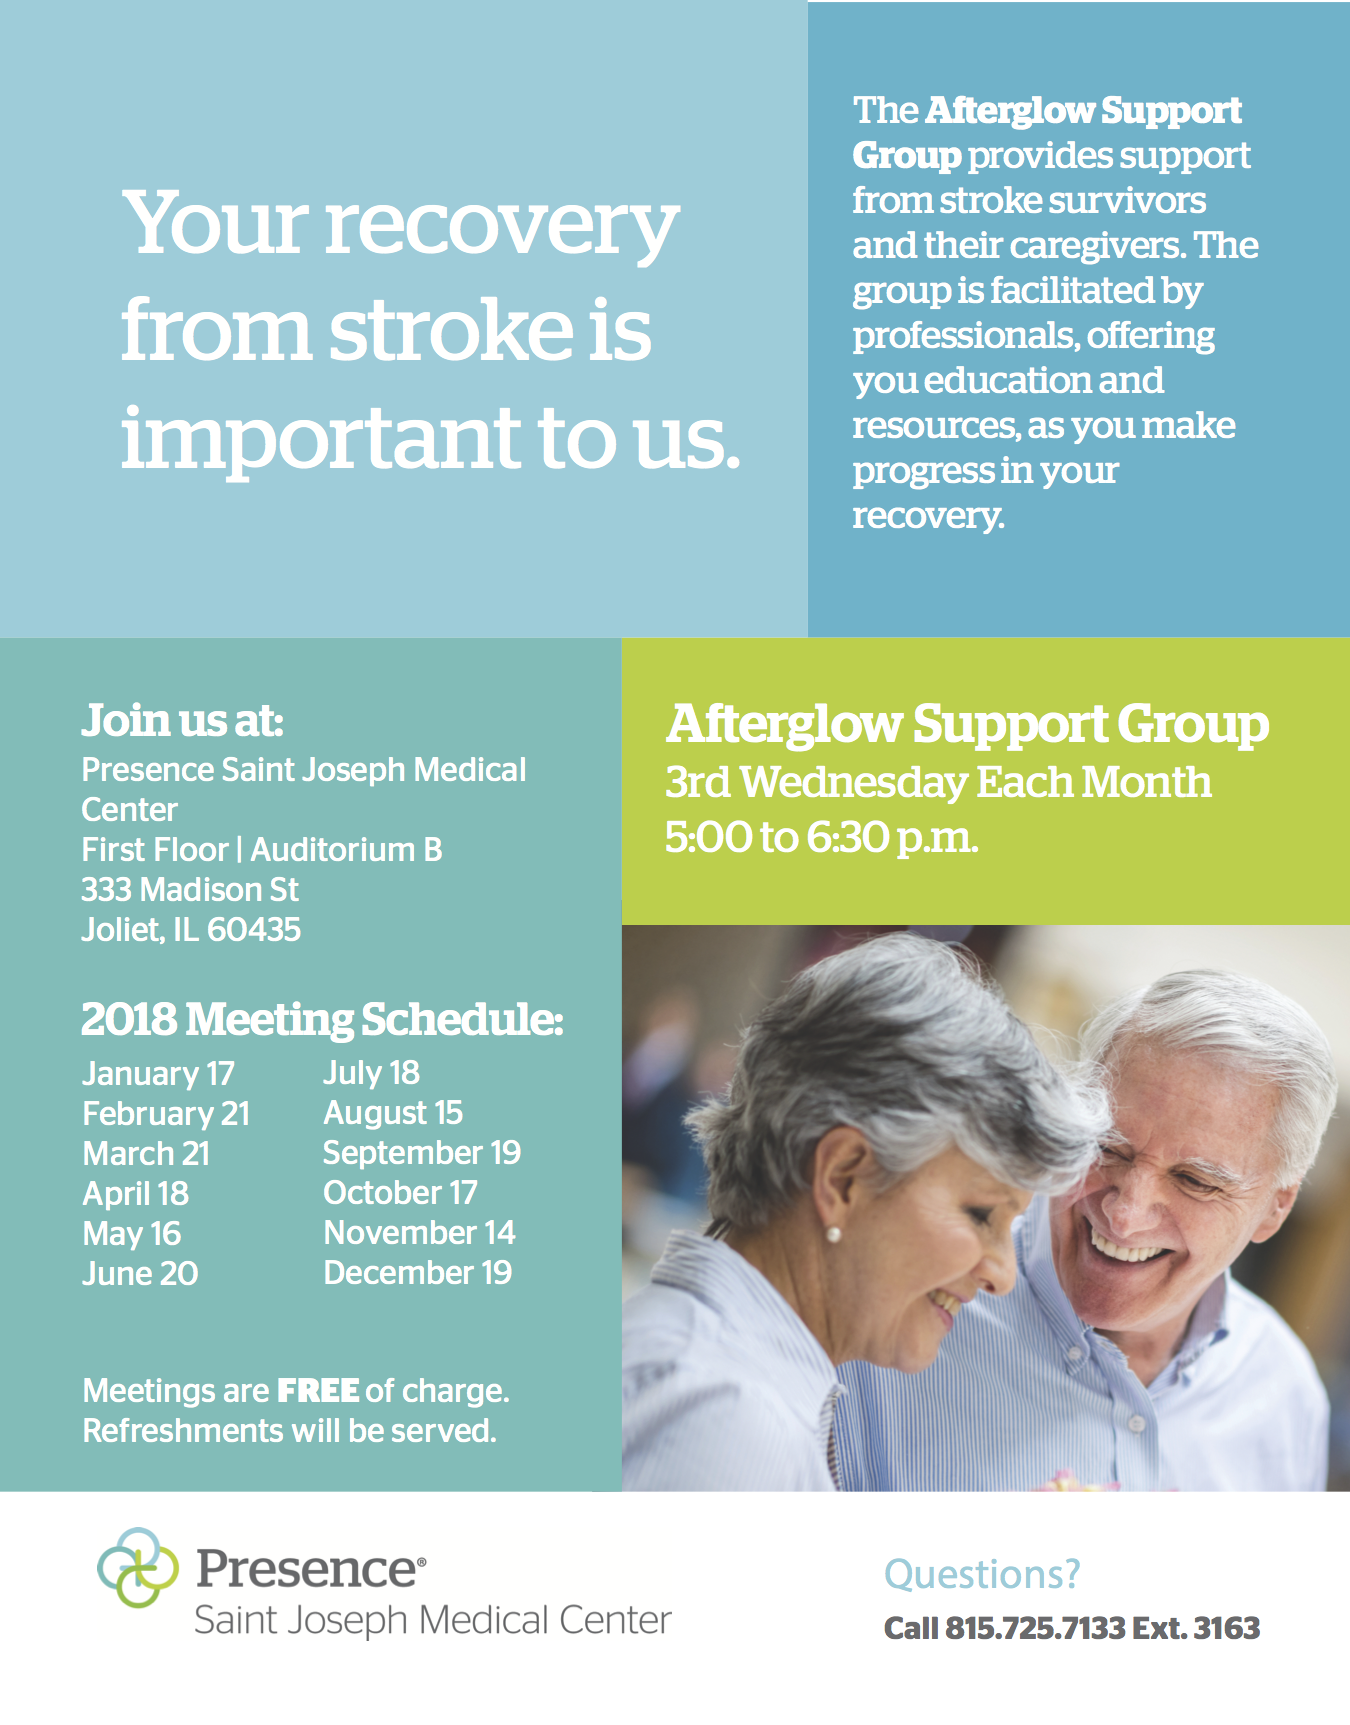 https://www.joeniekrofoundation.com/patient-caregiver-support/support-groups/locations/attachment/afterglow-2018-schedule7/